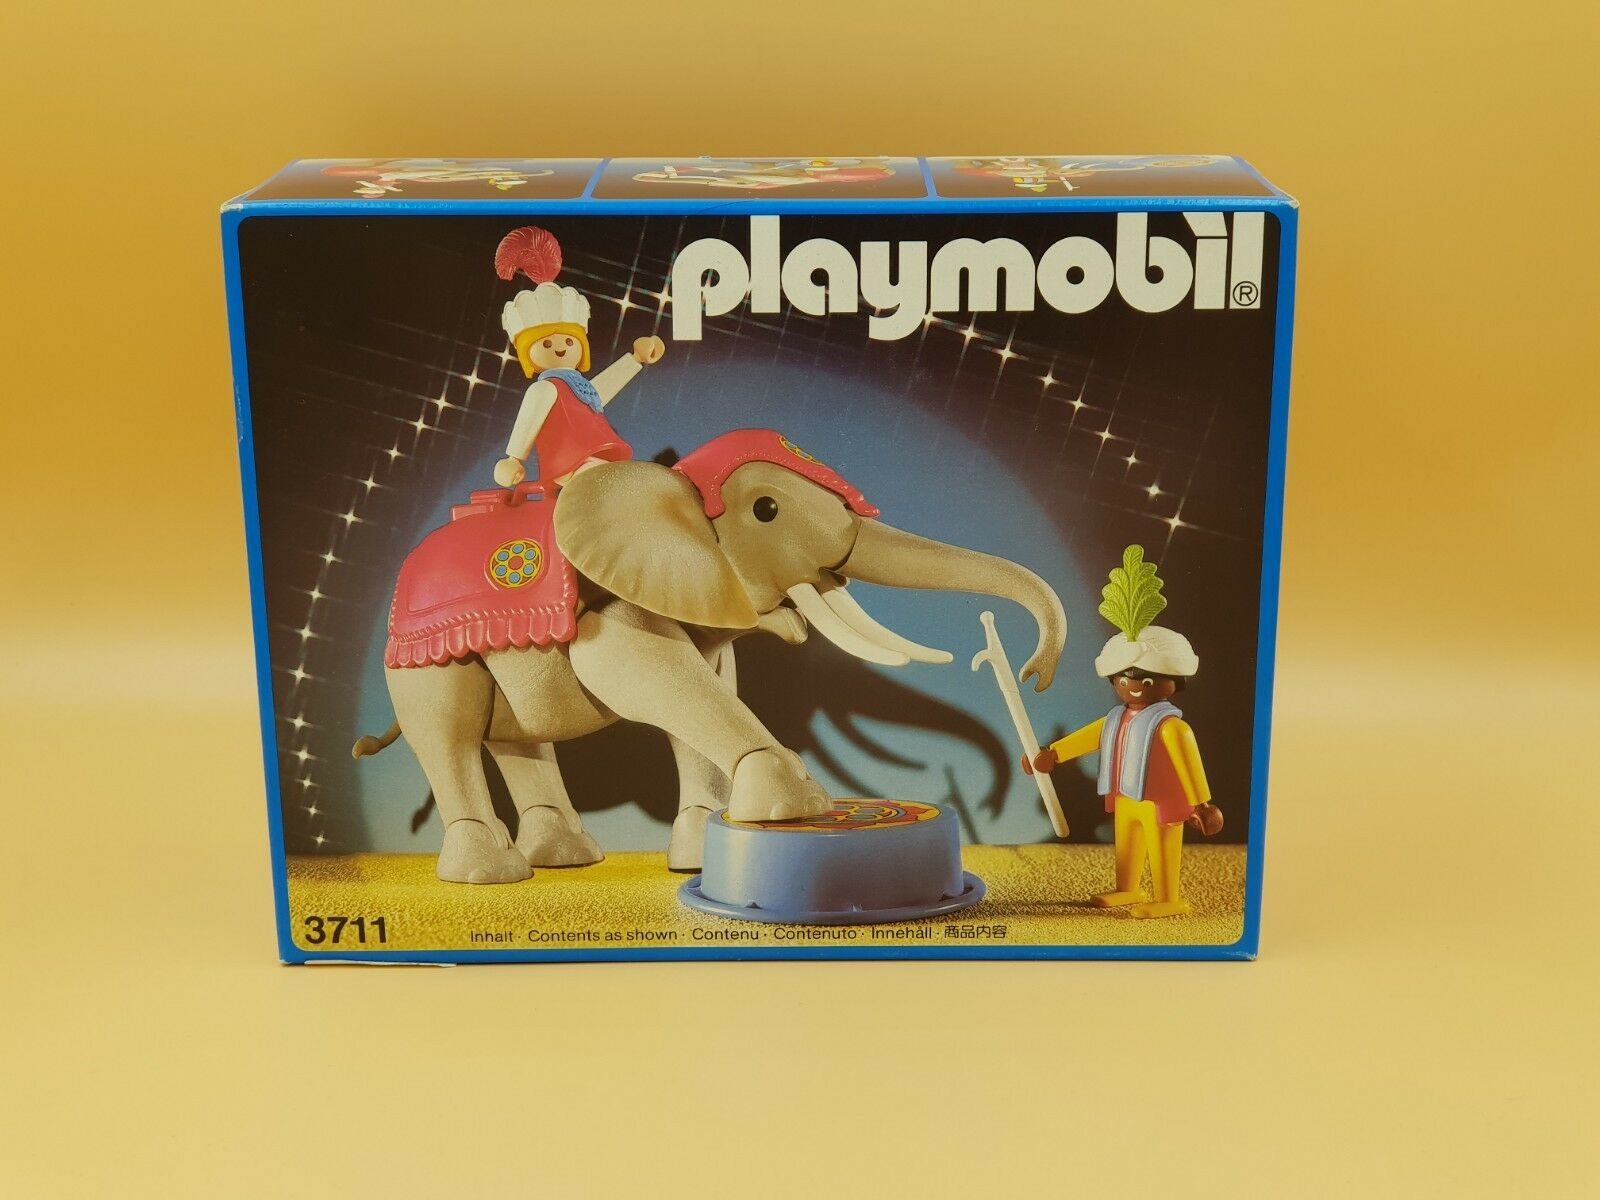 Playmobil 3711 Elephant With Rider And Handler Version 1 NEW IN BOX